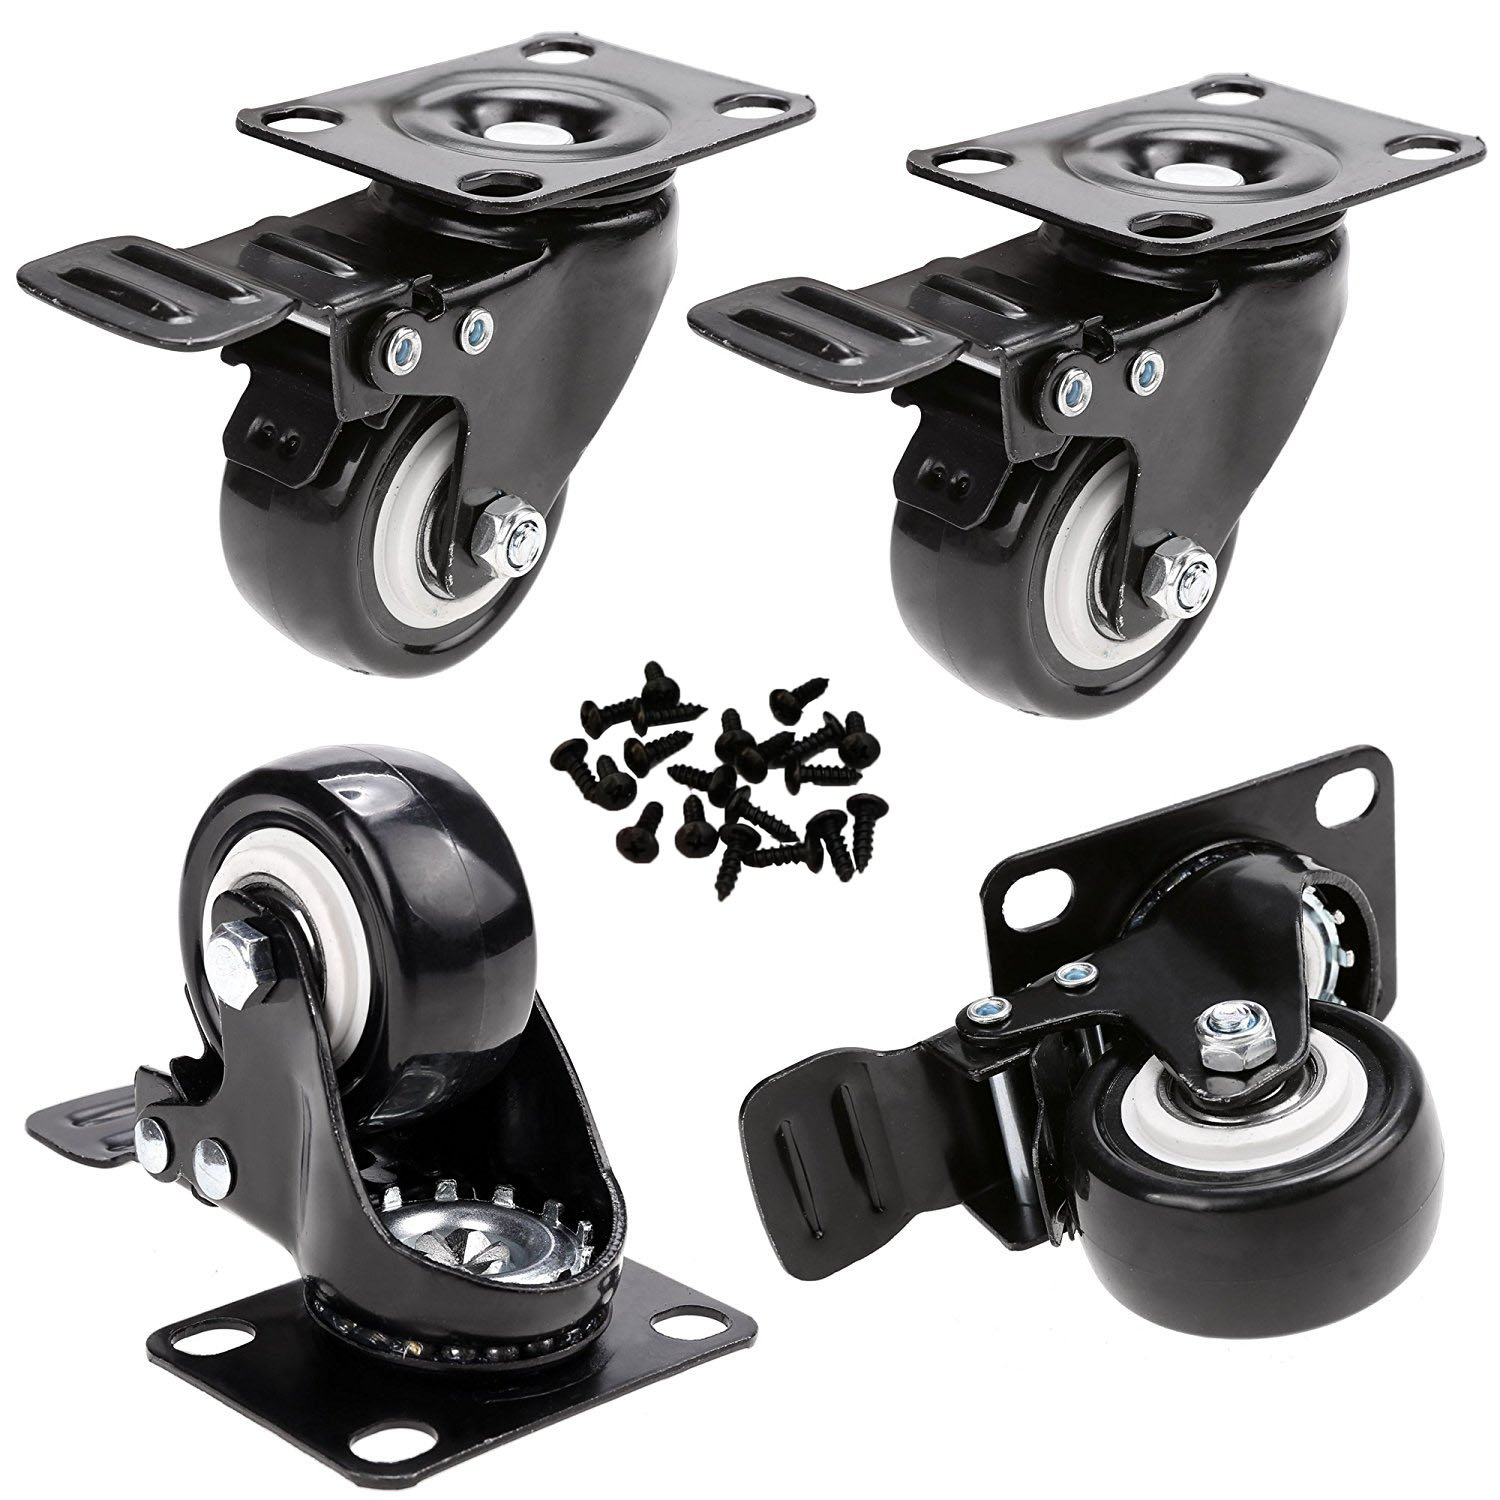 GAGEC 2'' Swivel Caster Wheels Rubber Base with Brake & 20 Screws Bearing Heavy Duty Pack of 4 by GAGEC (Image #1)